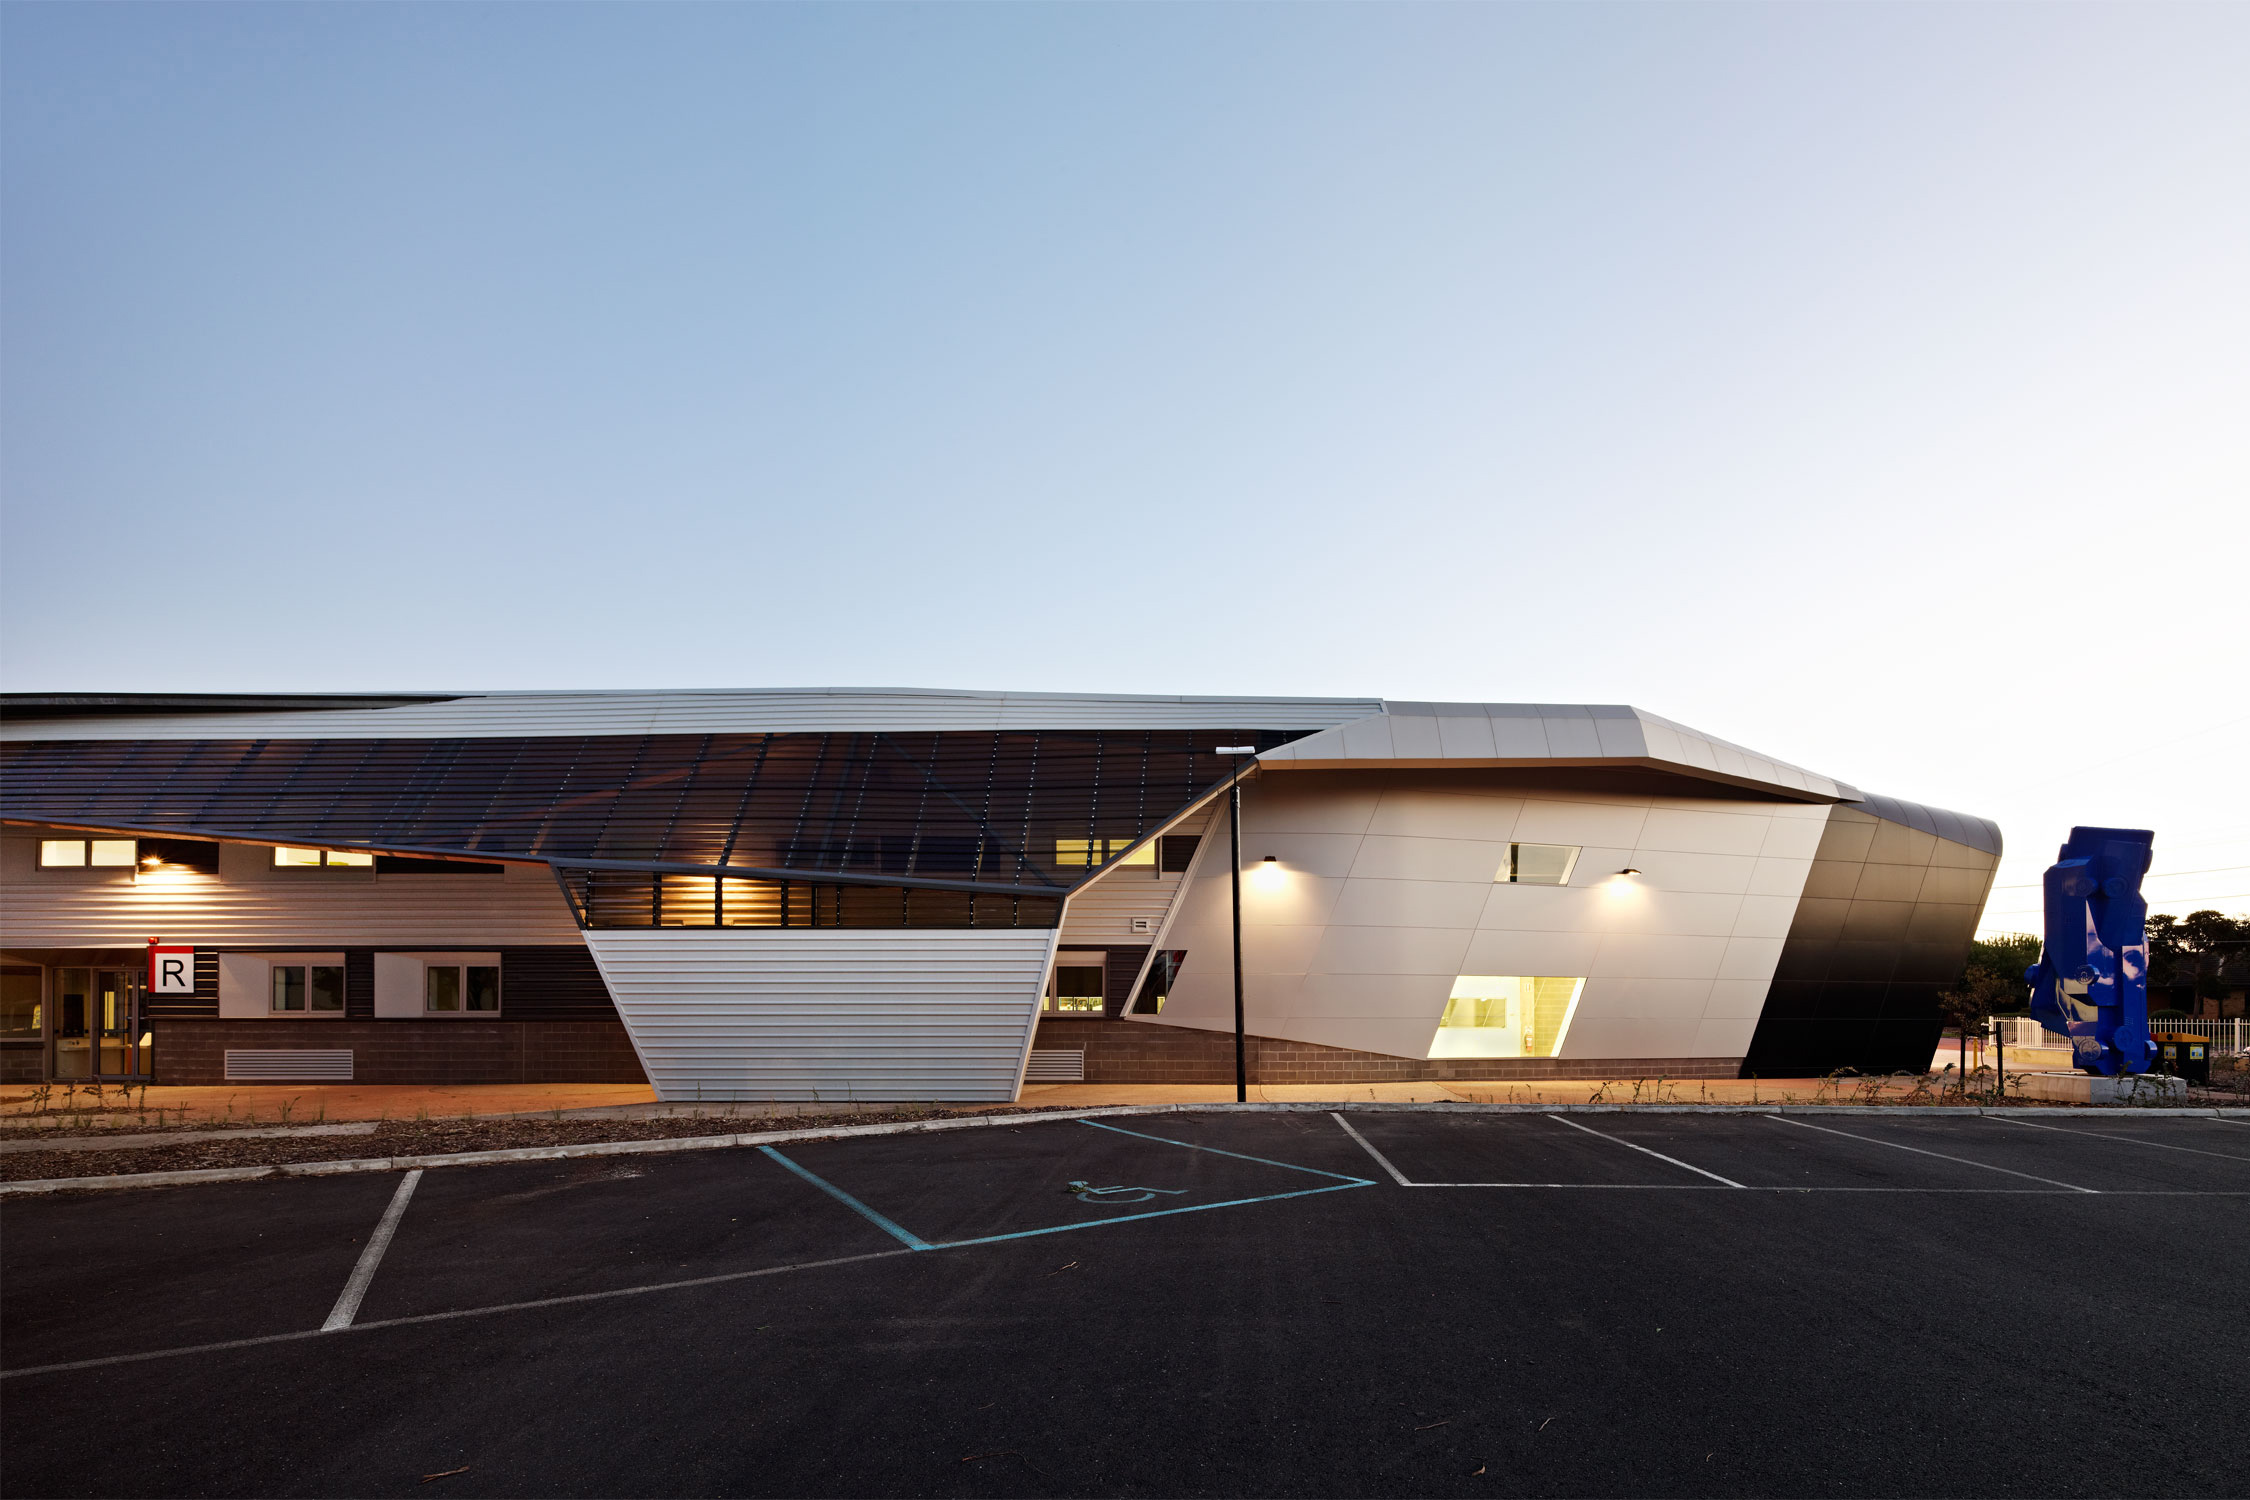 Paul Morgan Architects Chisholm Institute, Automotive and Logistics Centre